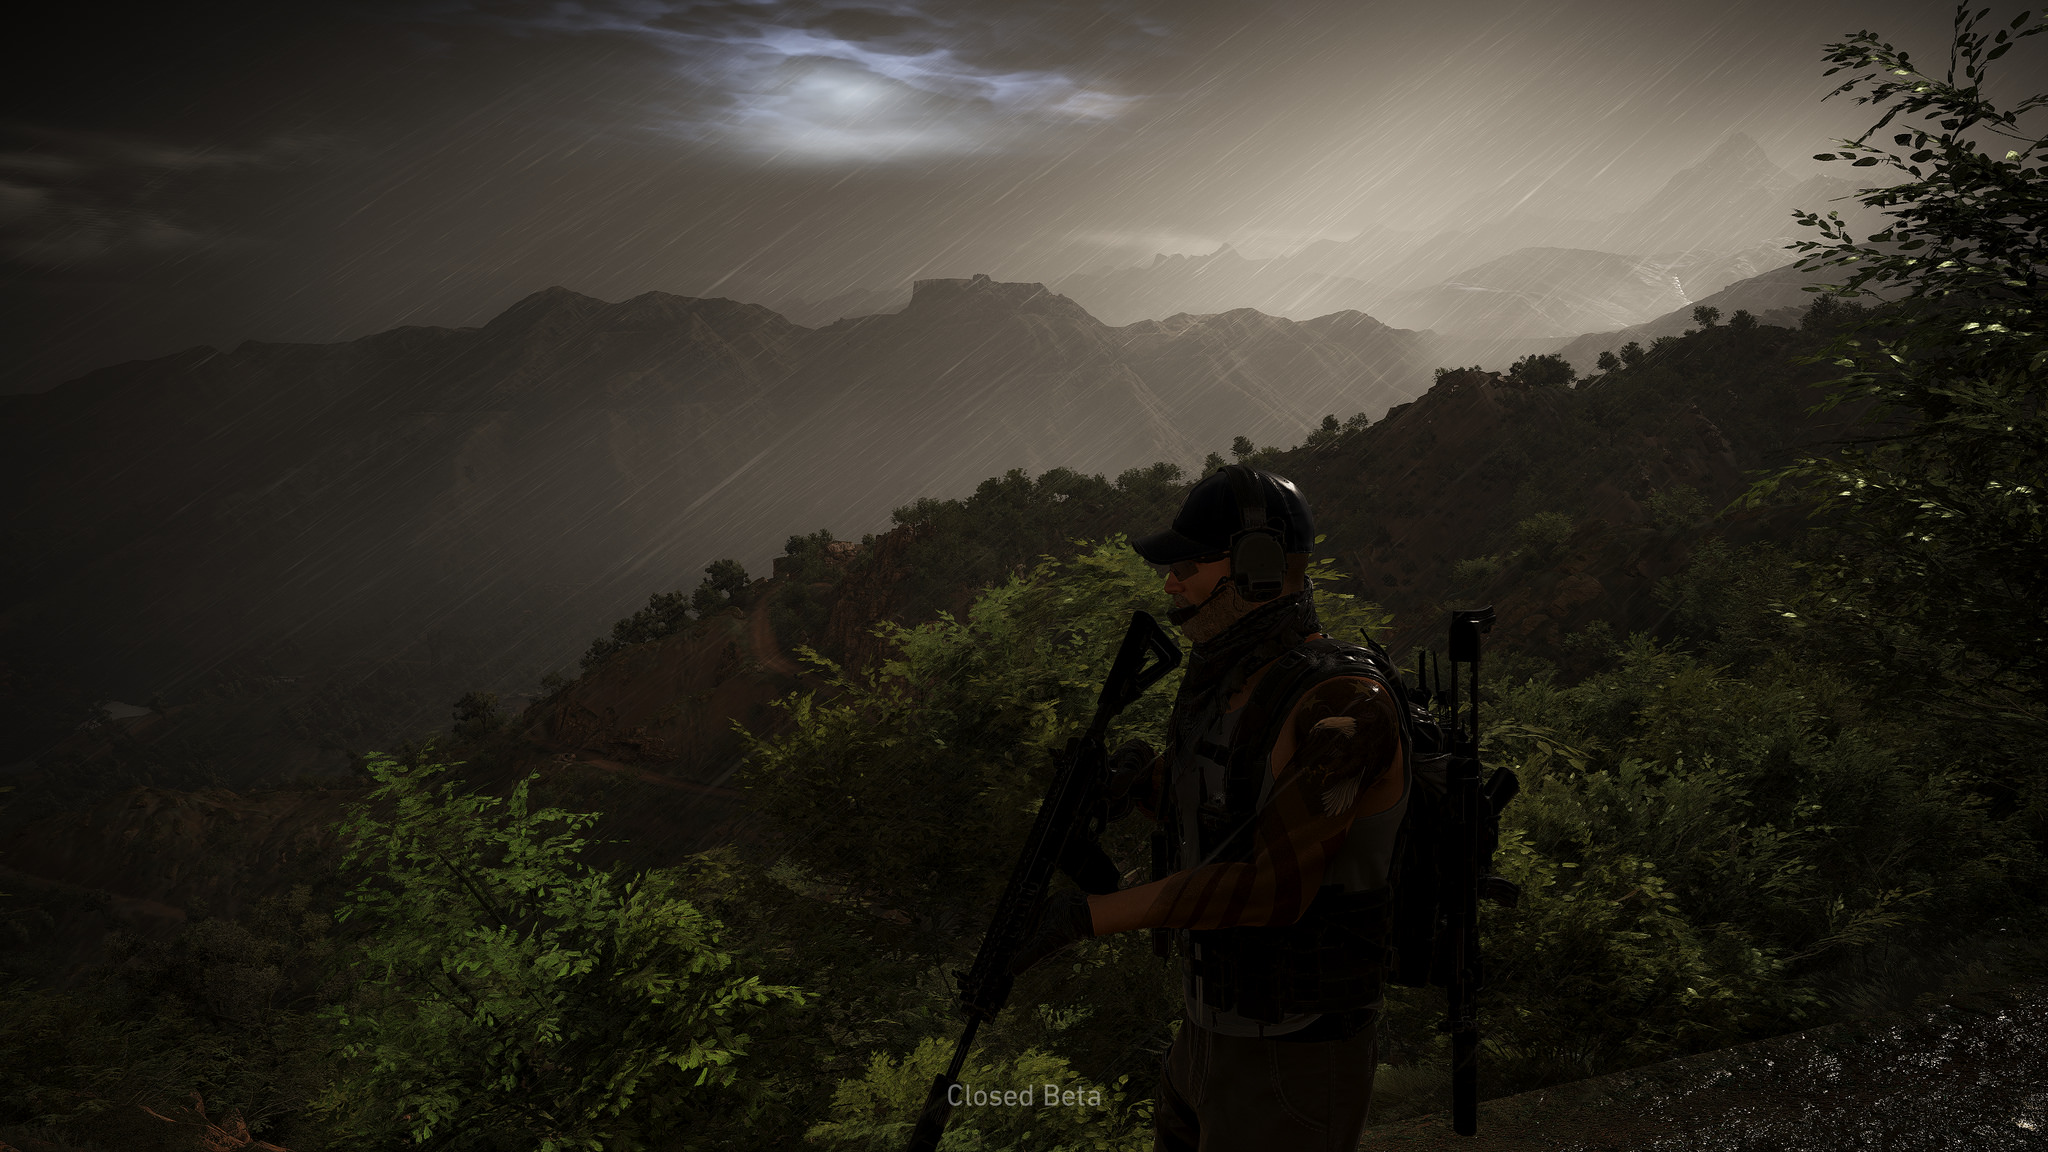 Preview - Ghost Recon Wildlands closed beta 4K screenshots ...